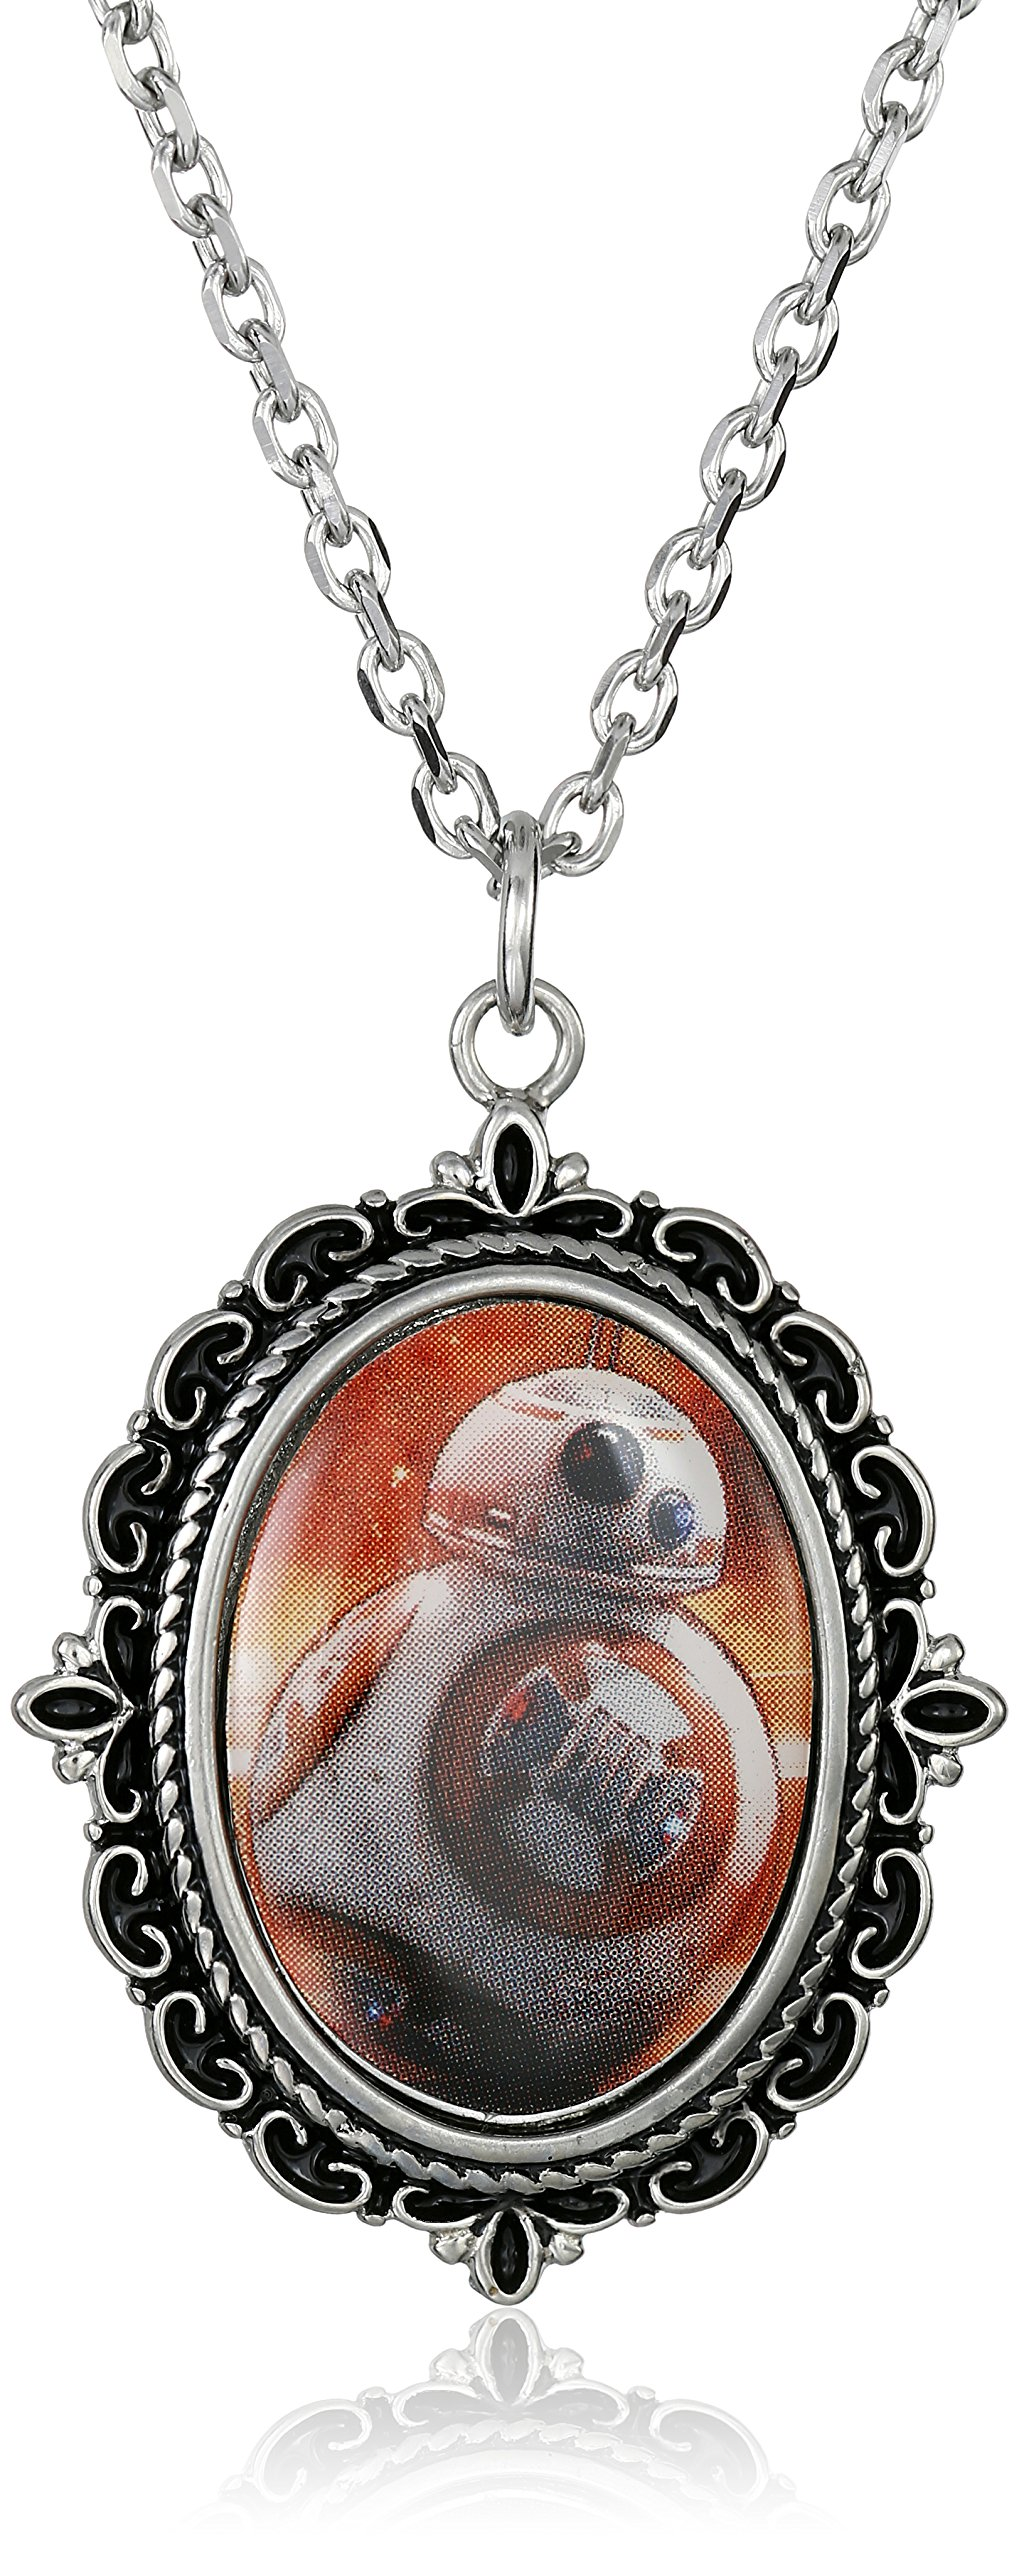 Star Wars Jewelry Star Wars Episode 7 Steel Cameo Pendant Necklace, 18''